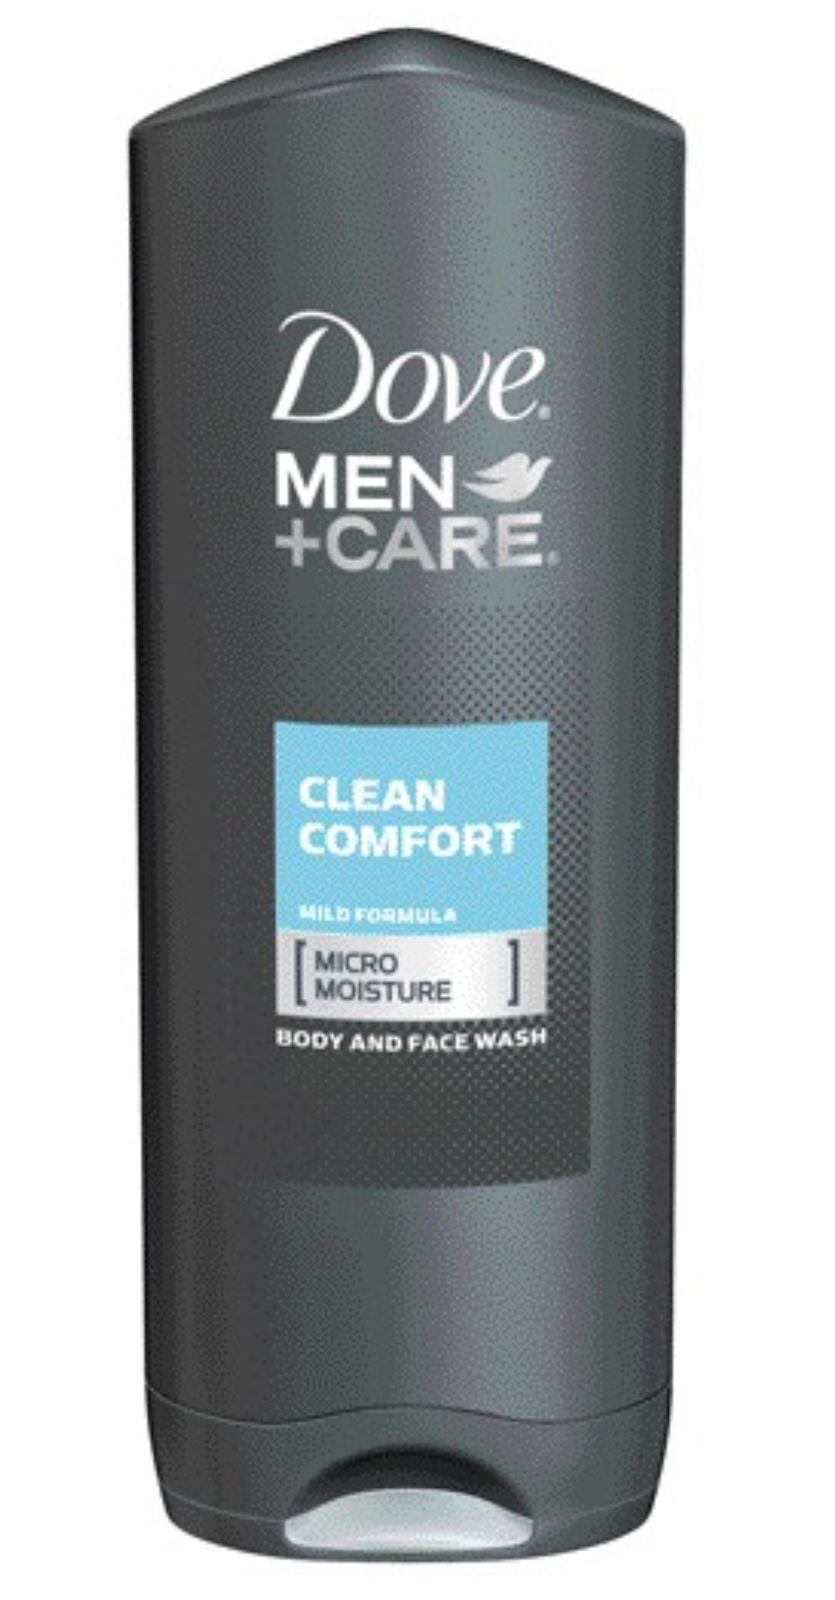 Primary image for Dove Men+Care Body Wash and Face Wash Clean Comfort 13.5 oz